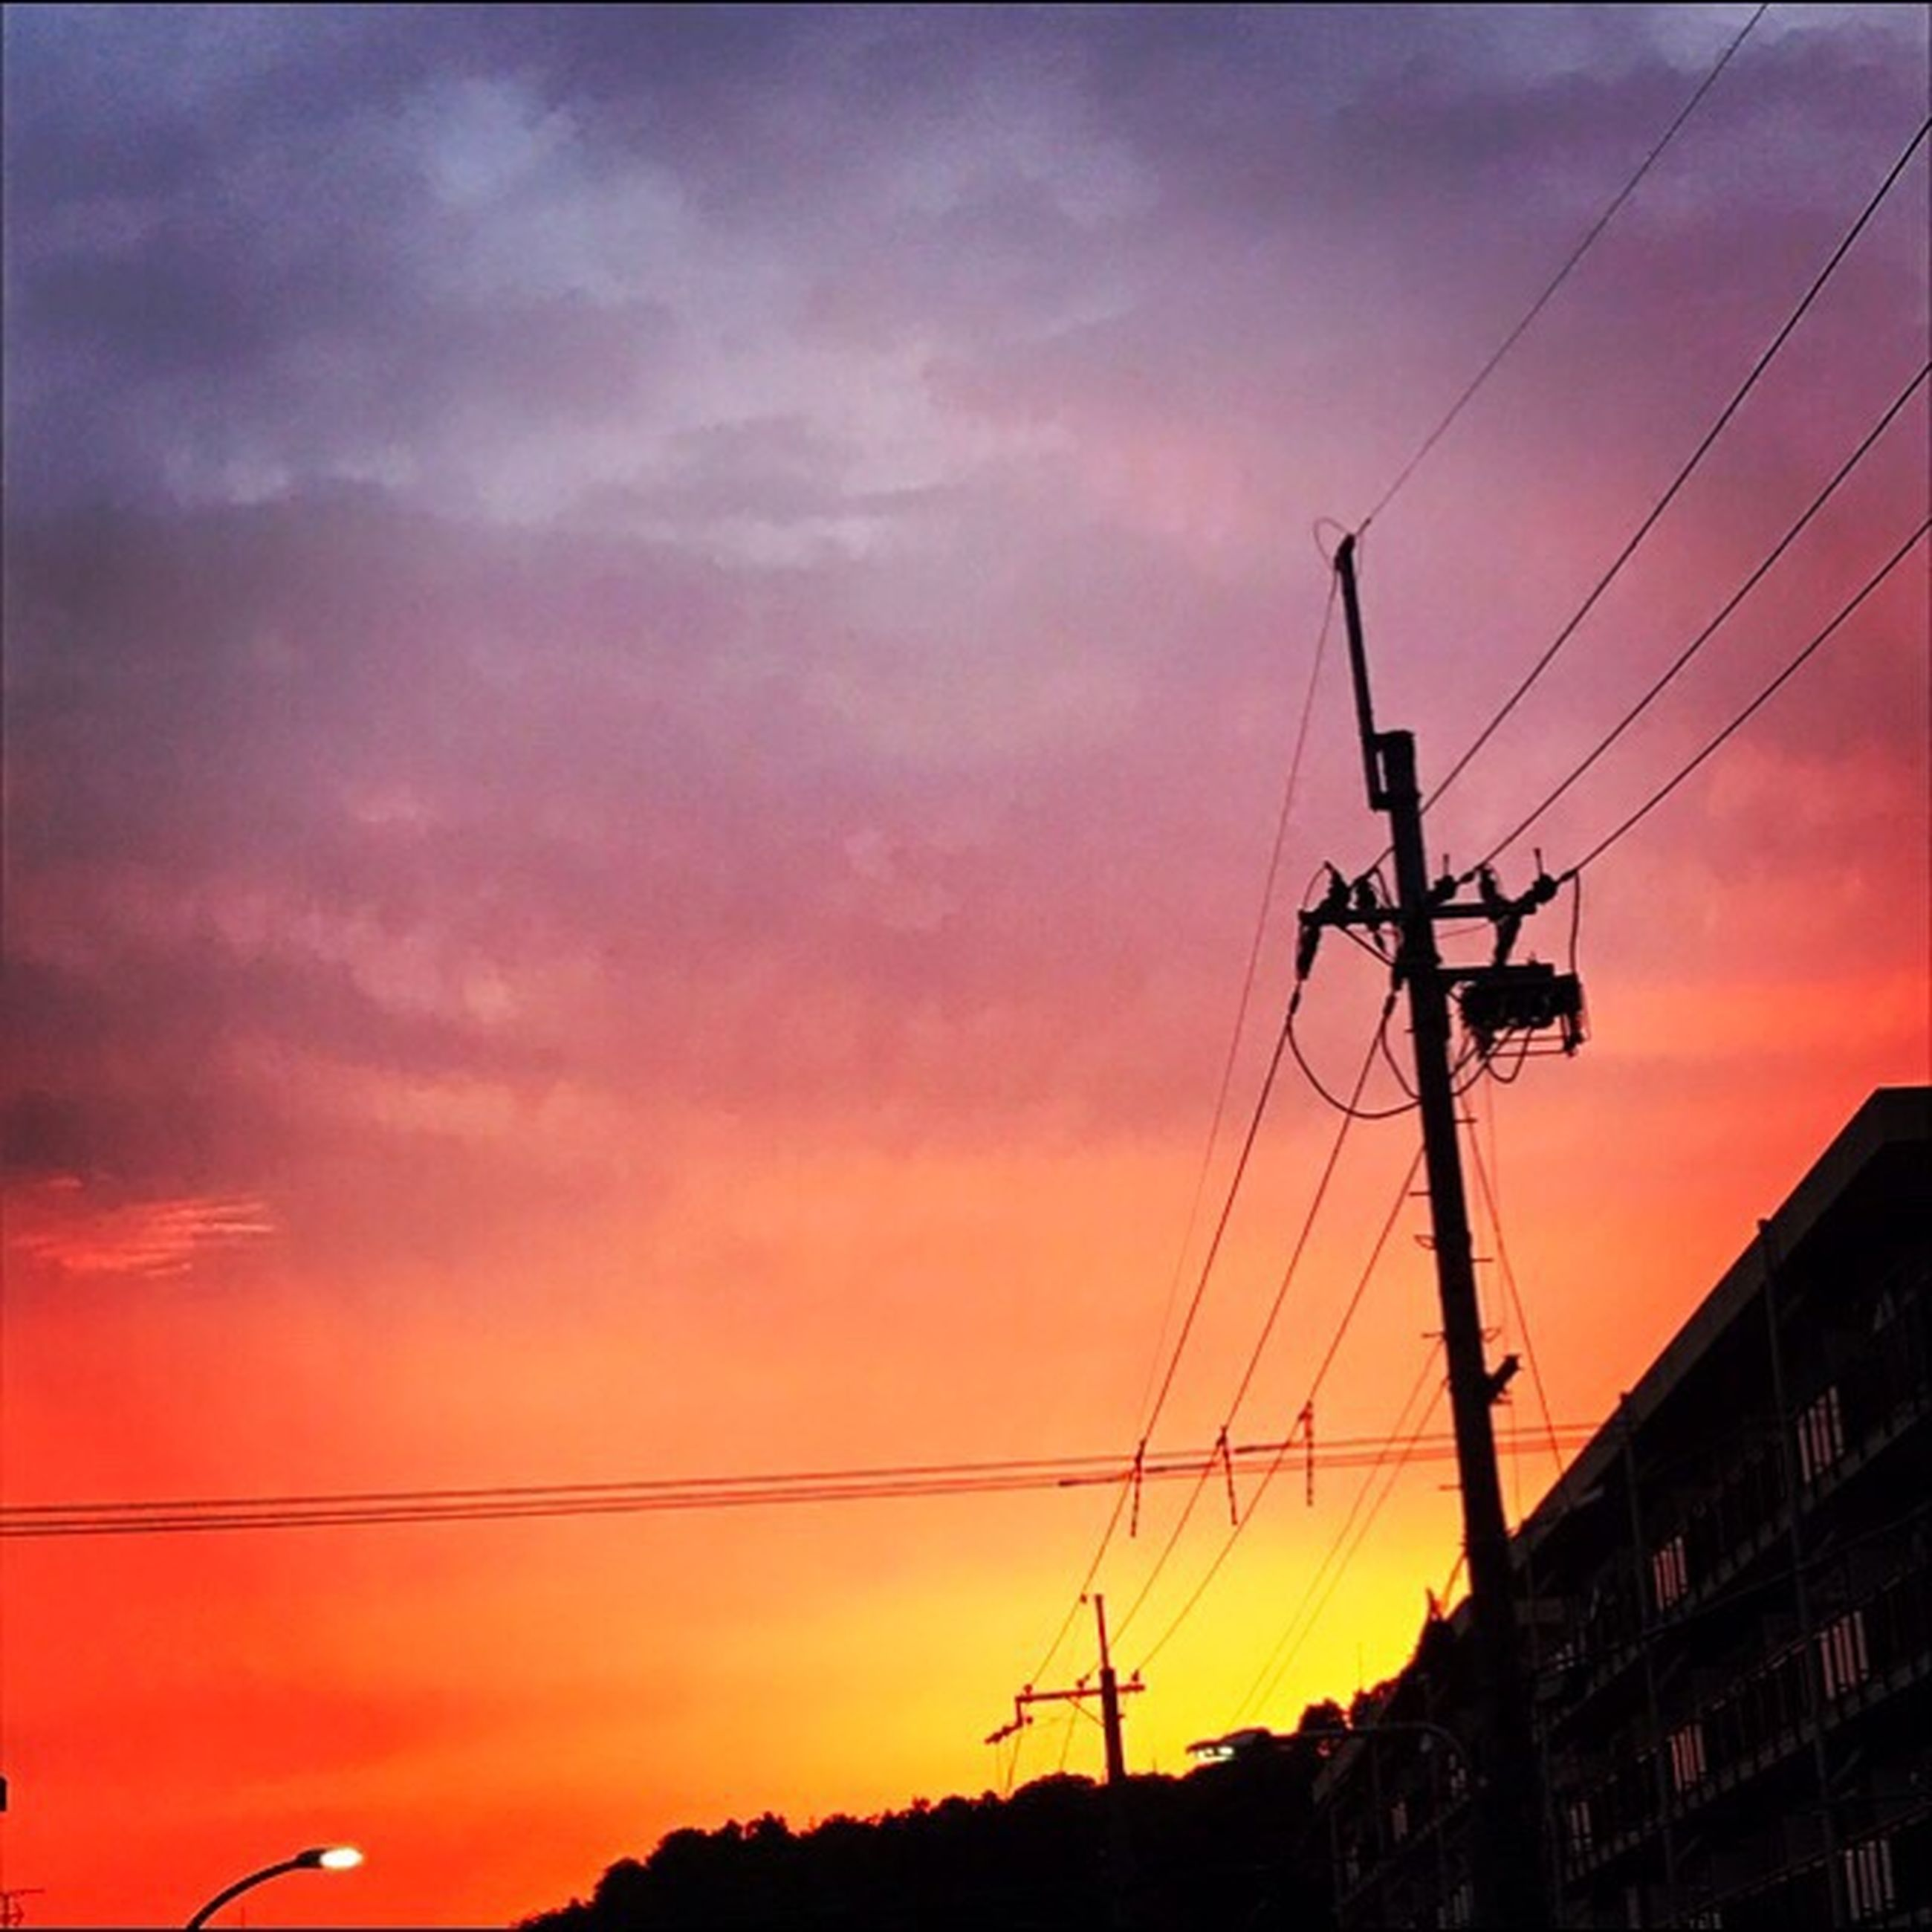 sunset, cable, connection, sky, silhouette, power line, cloud - sky, electricity, low angle view, electricity pylon, power supply, no people, technology, outdoors, built structure, nature, architecture, building exterior, telephone line, day